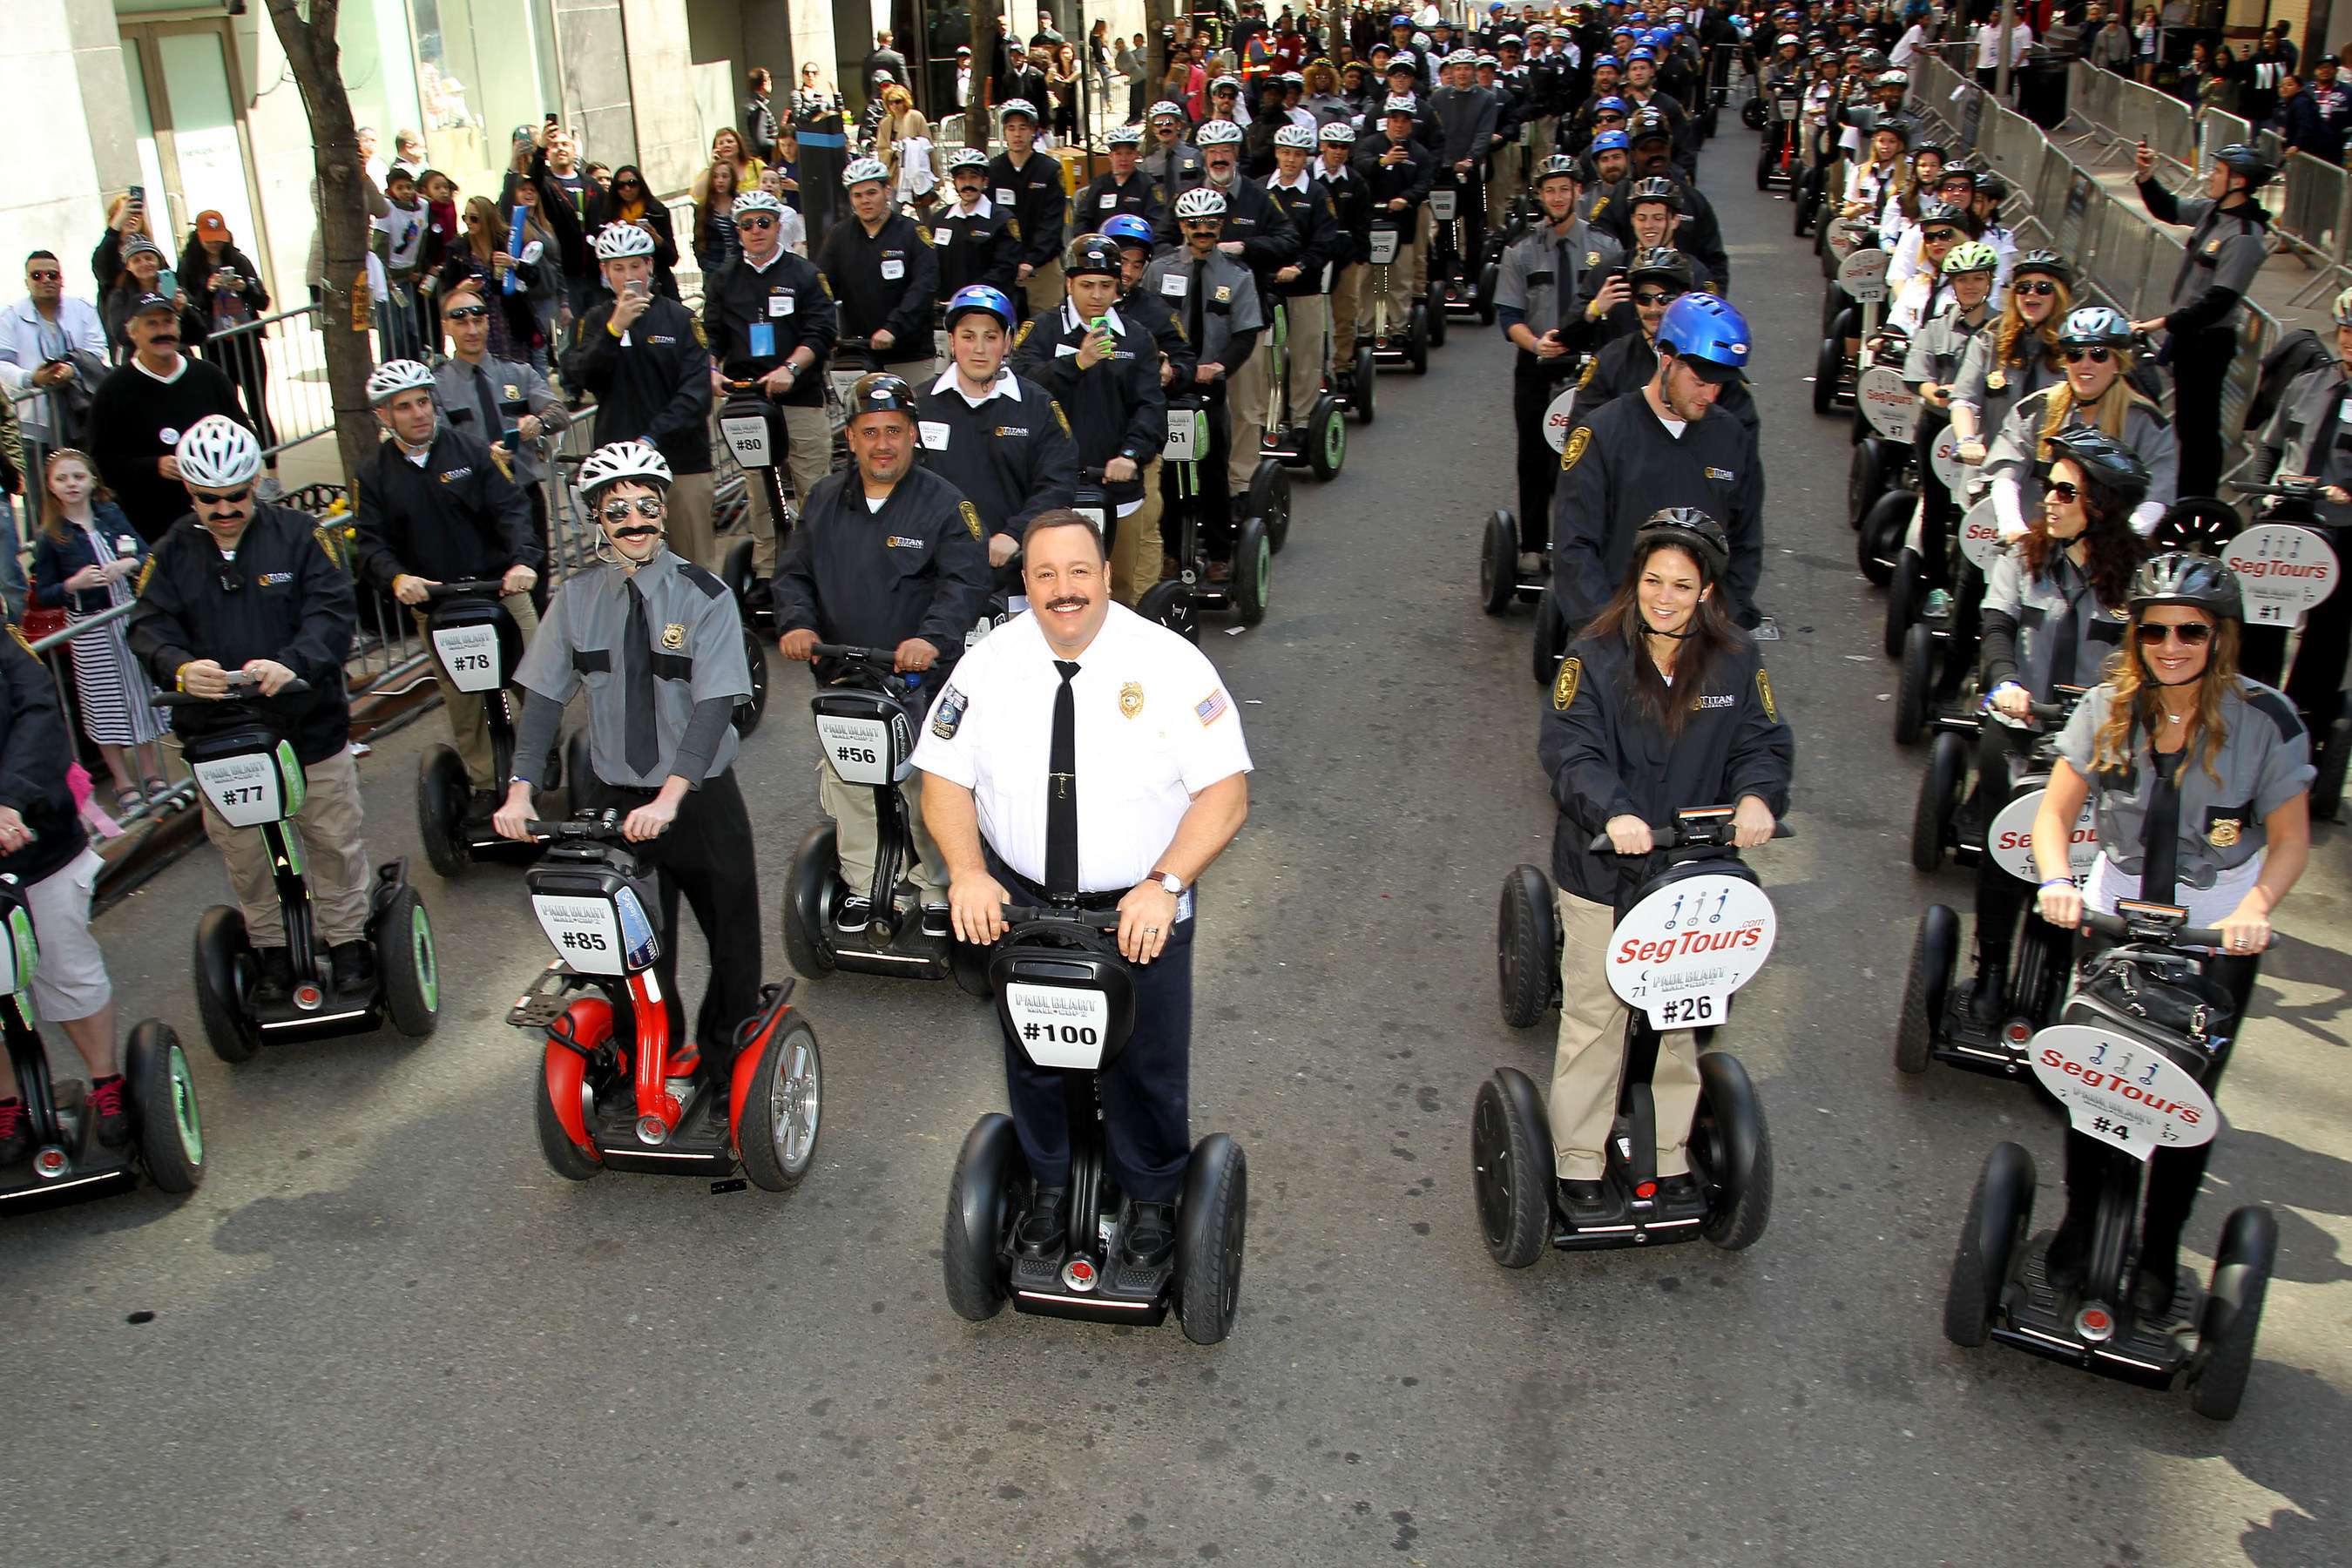 'Paul Blart: Mall Cop 2' And New York's Finest Security Guards Claim Two GUINNESS WORLD RECORDS'' Titles On National Security Guard Day